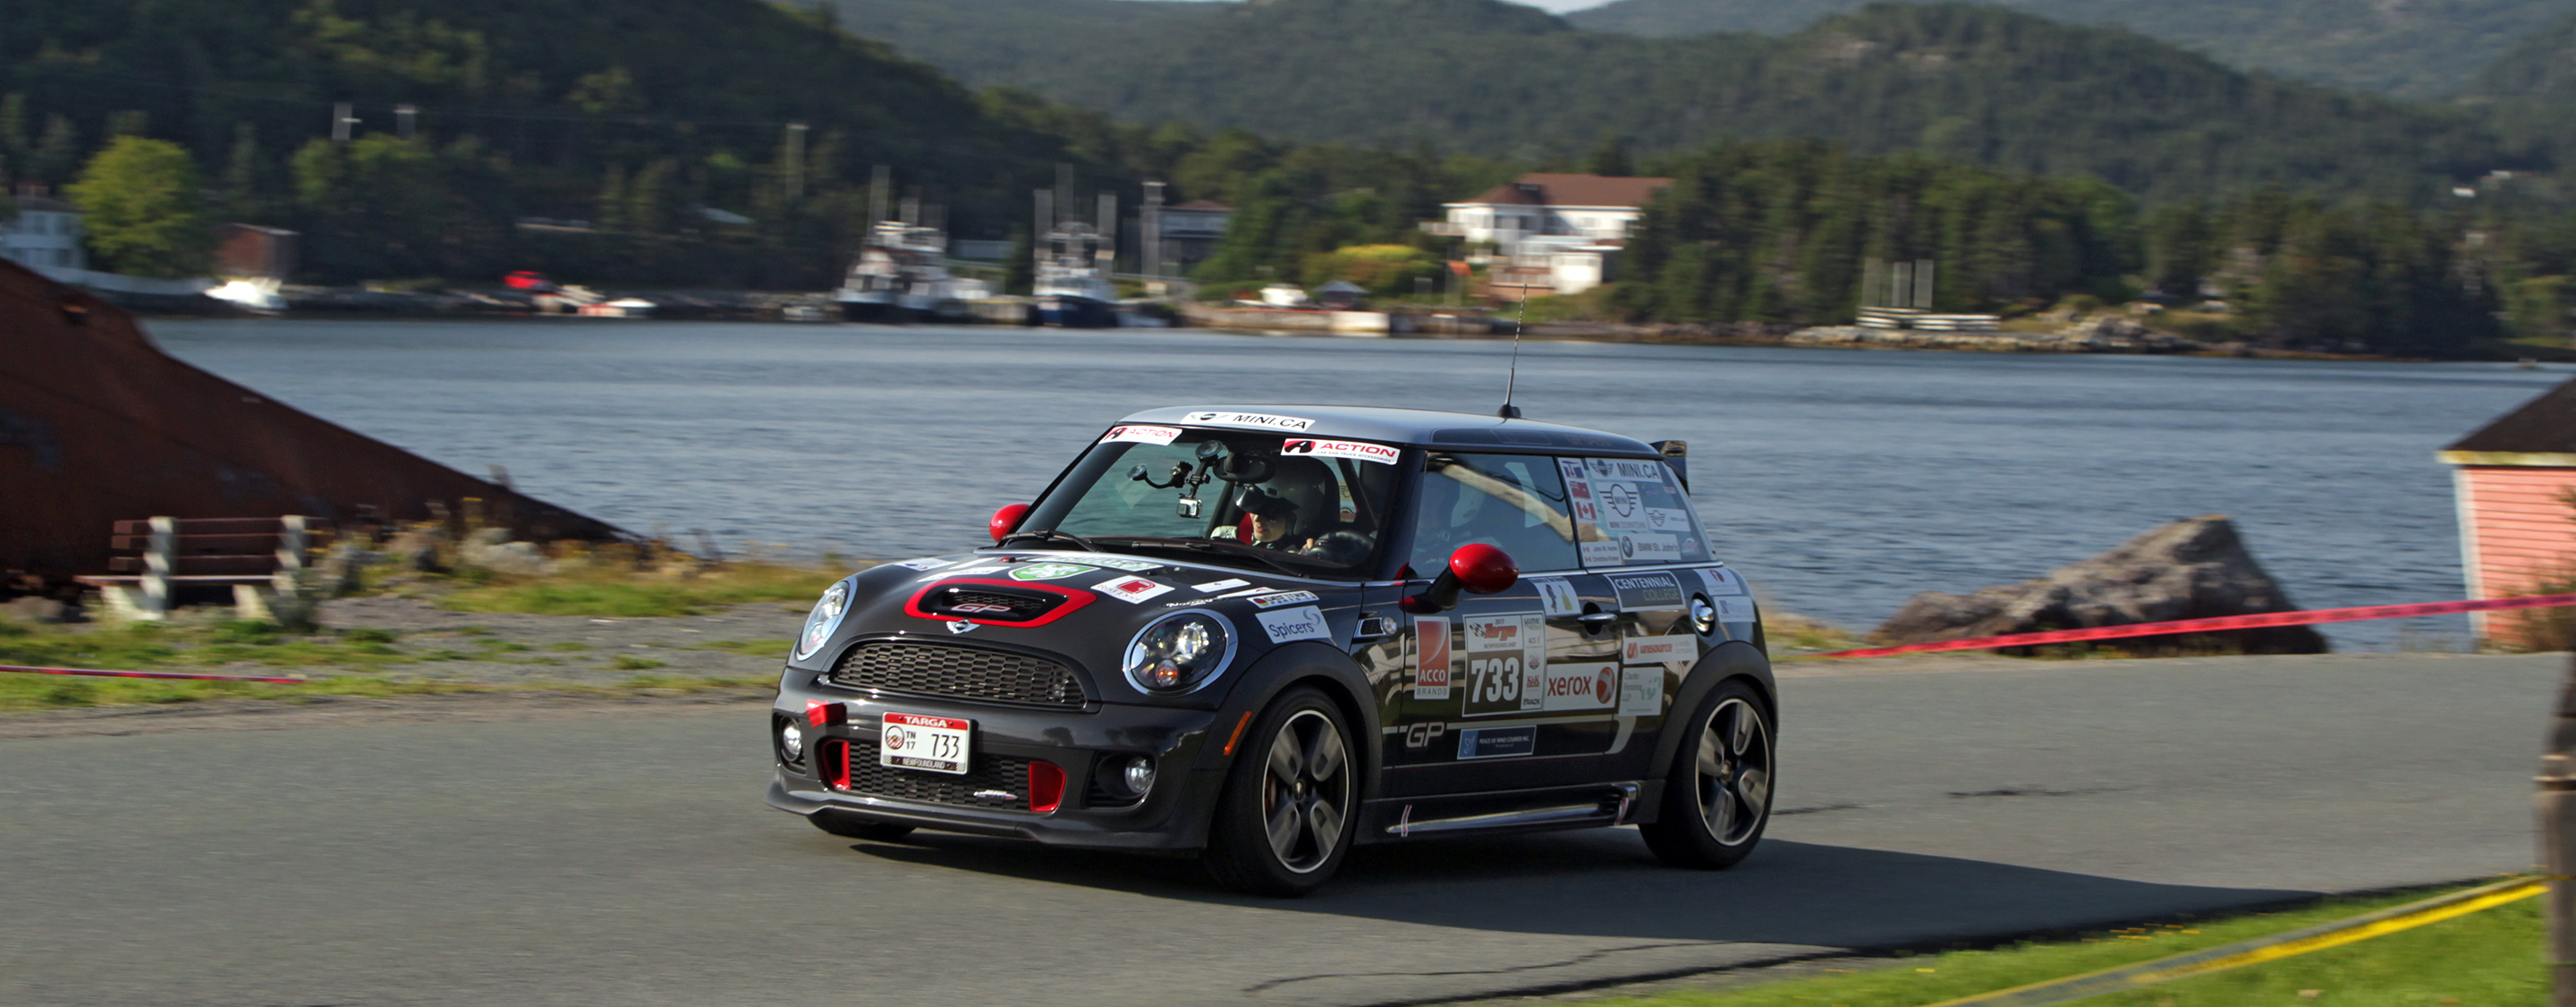 TrackWorthy - MINI Canada shows commitment to Canadian motorsport (1)